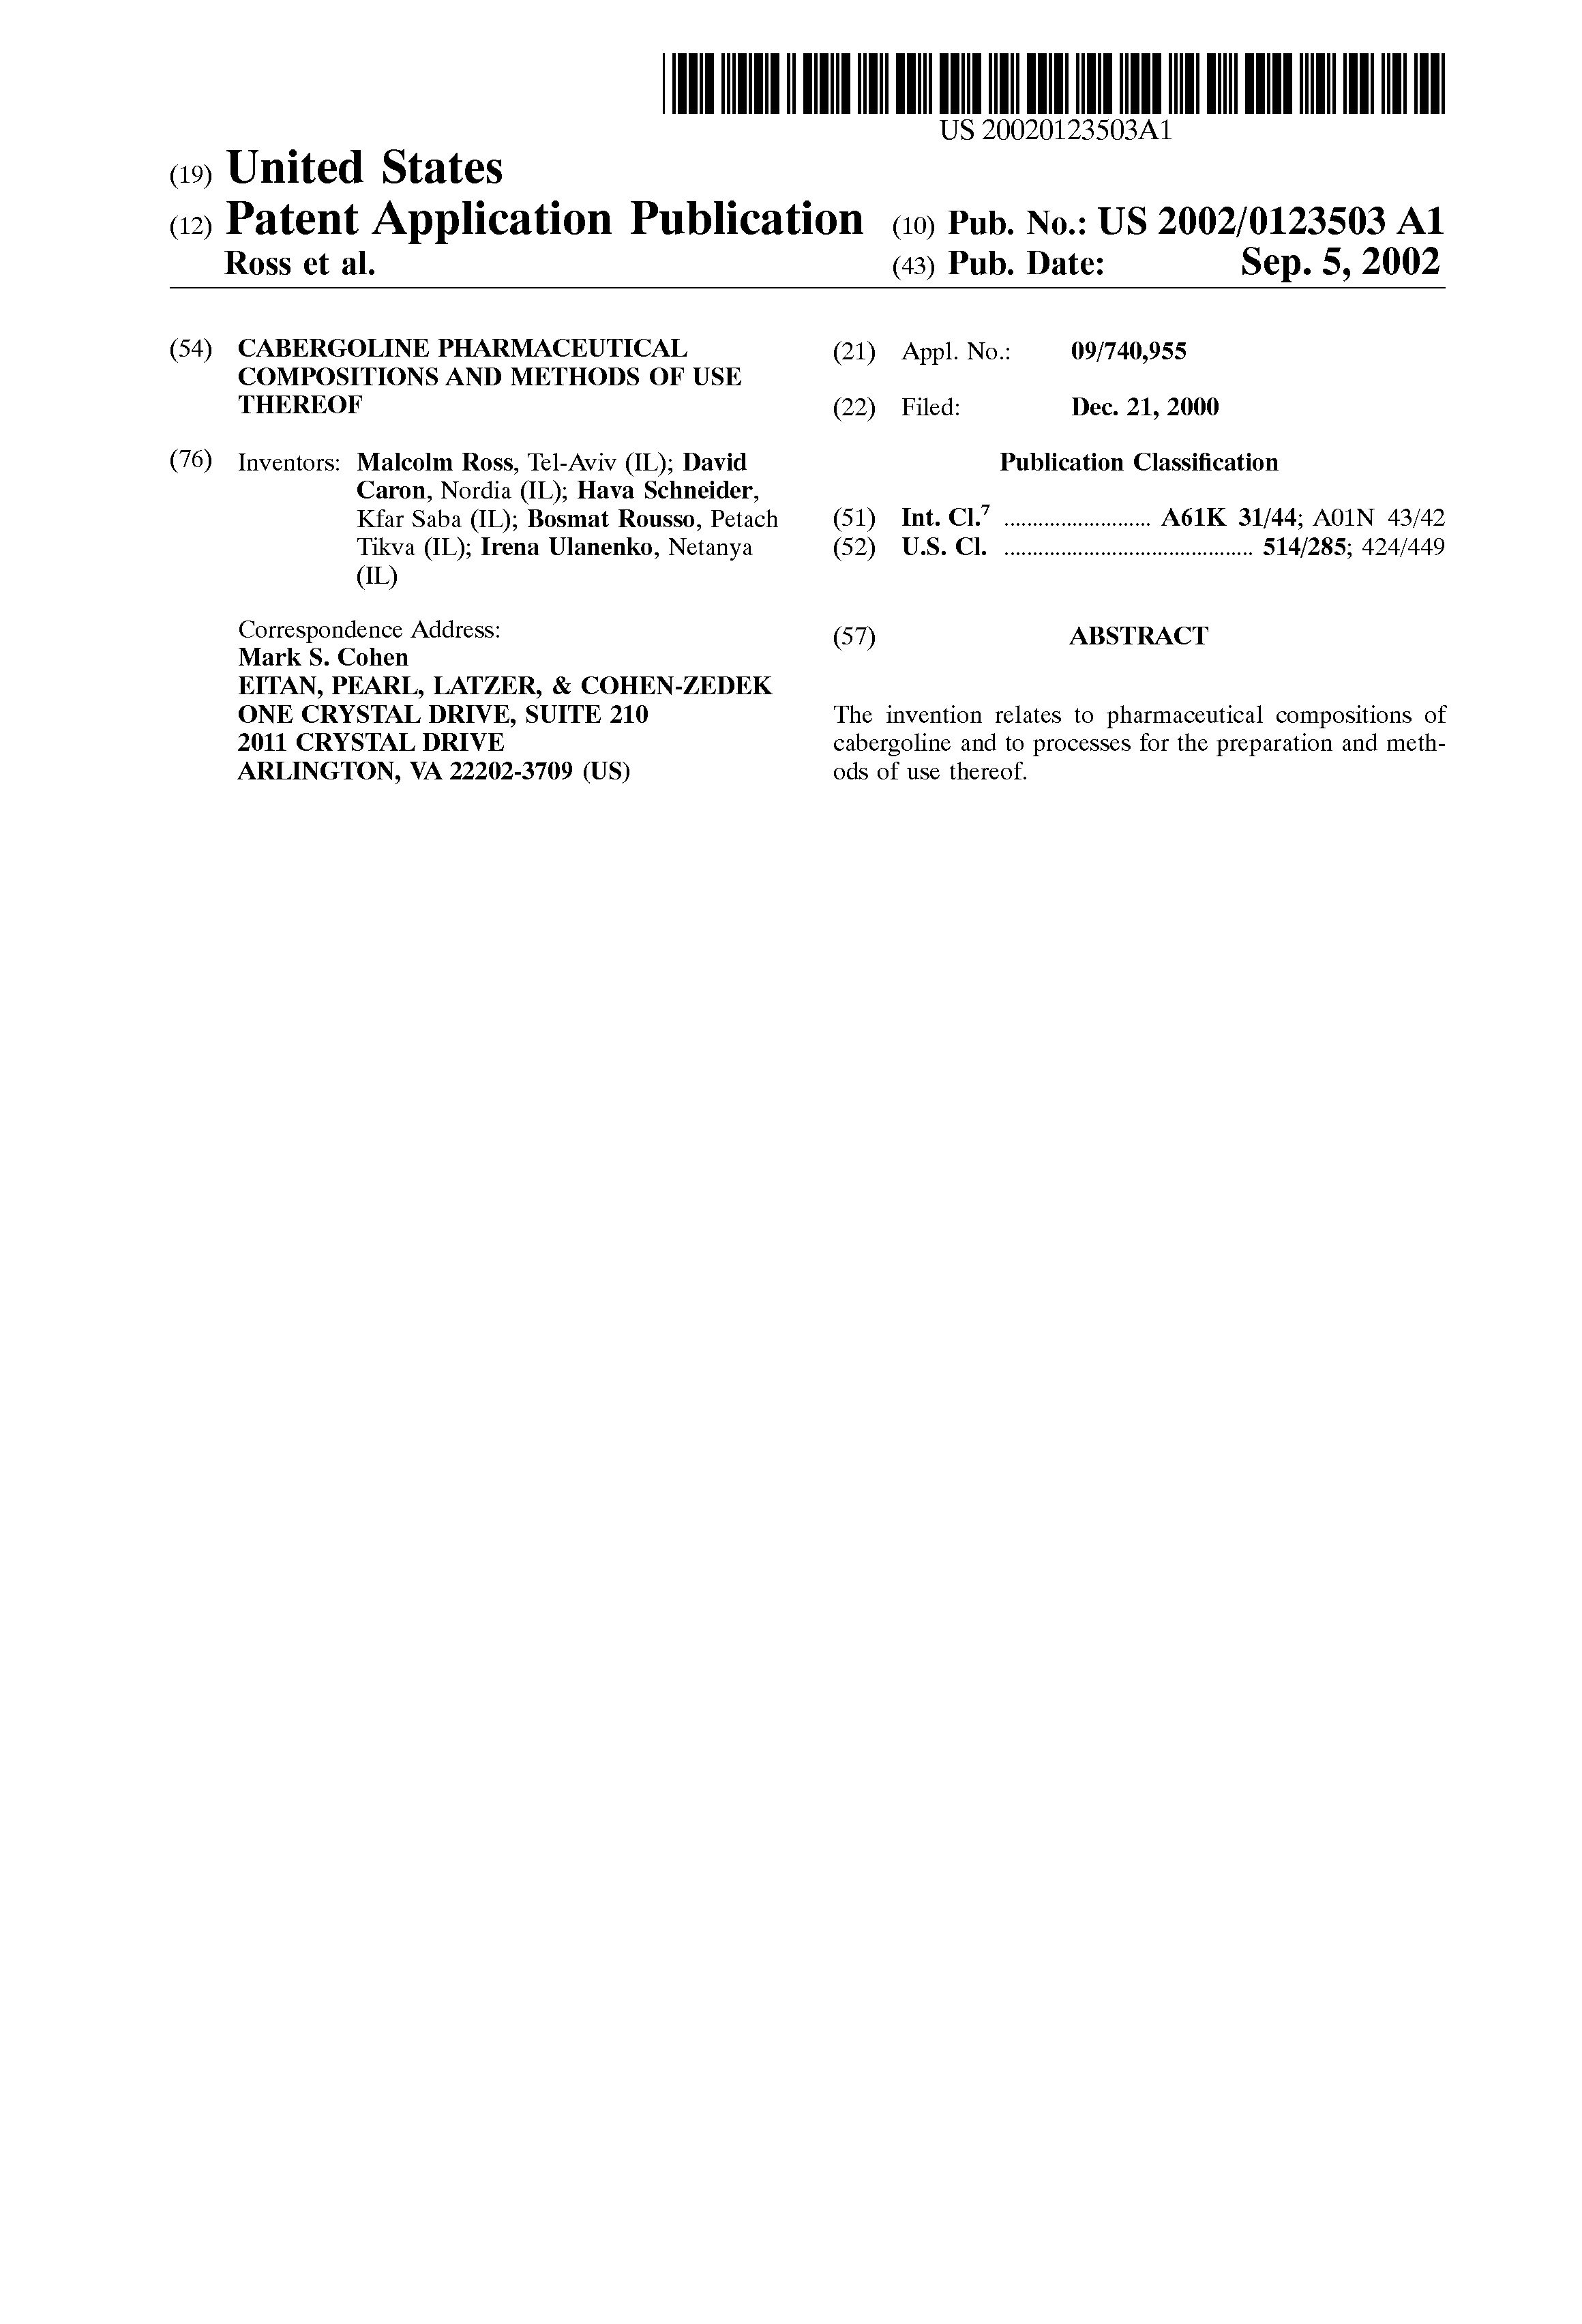 Dostinex 0 5mg tablets.doc - Patent Drawing